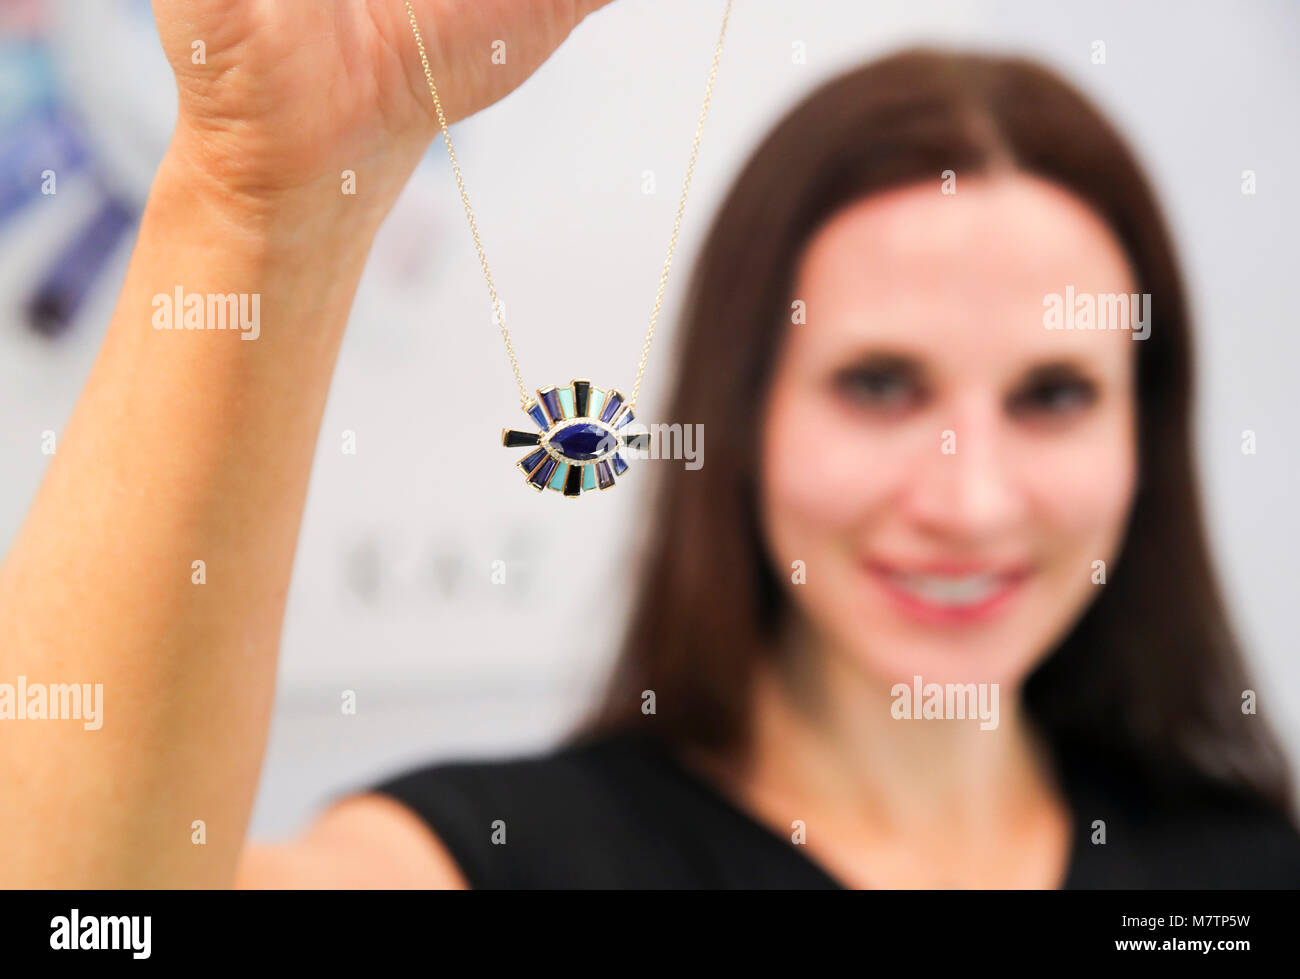 (180312) -- NEW YORK, March 12, 2018 (Xinhua) -- Jewelry Designer Theresa Kaz shows her design at her booth at the - Stock Image